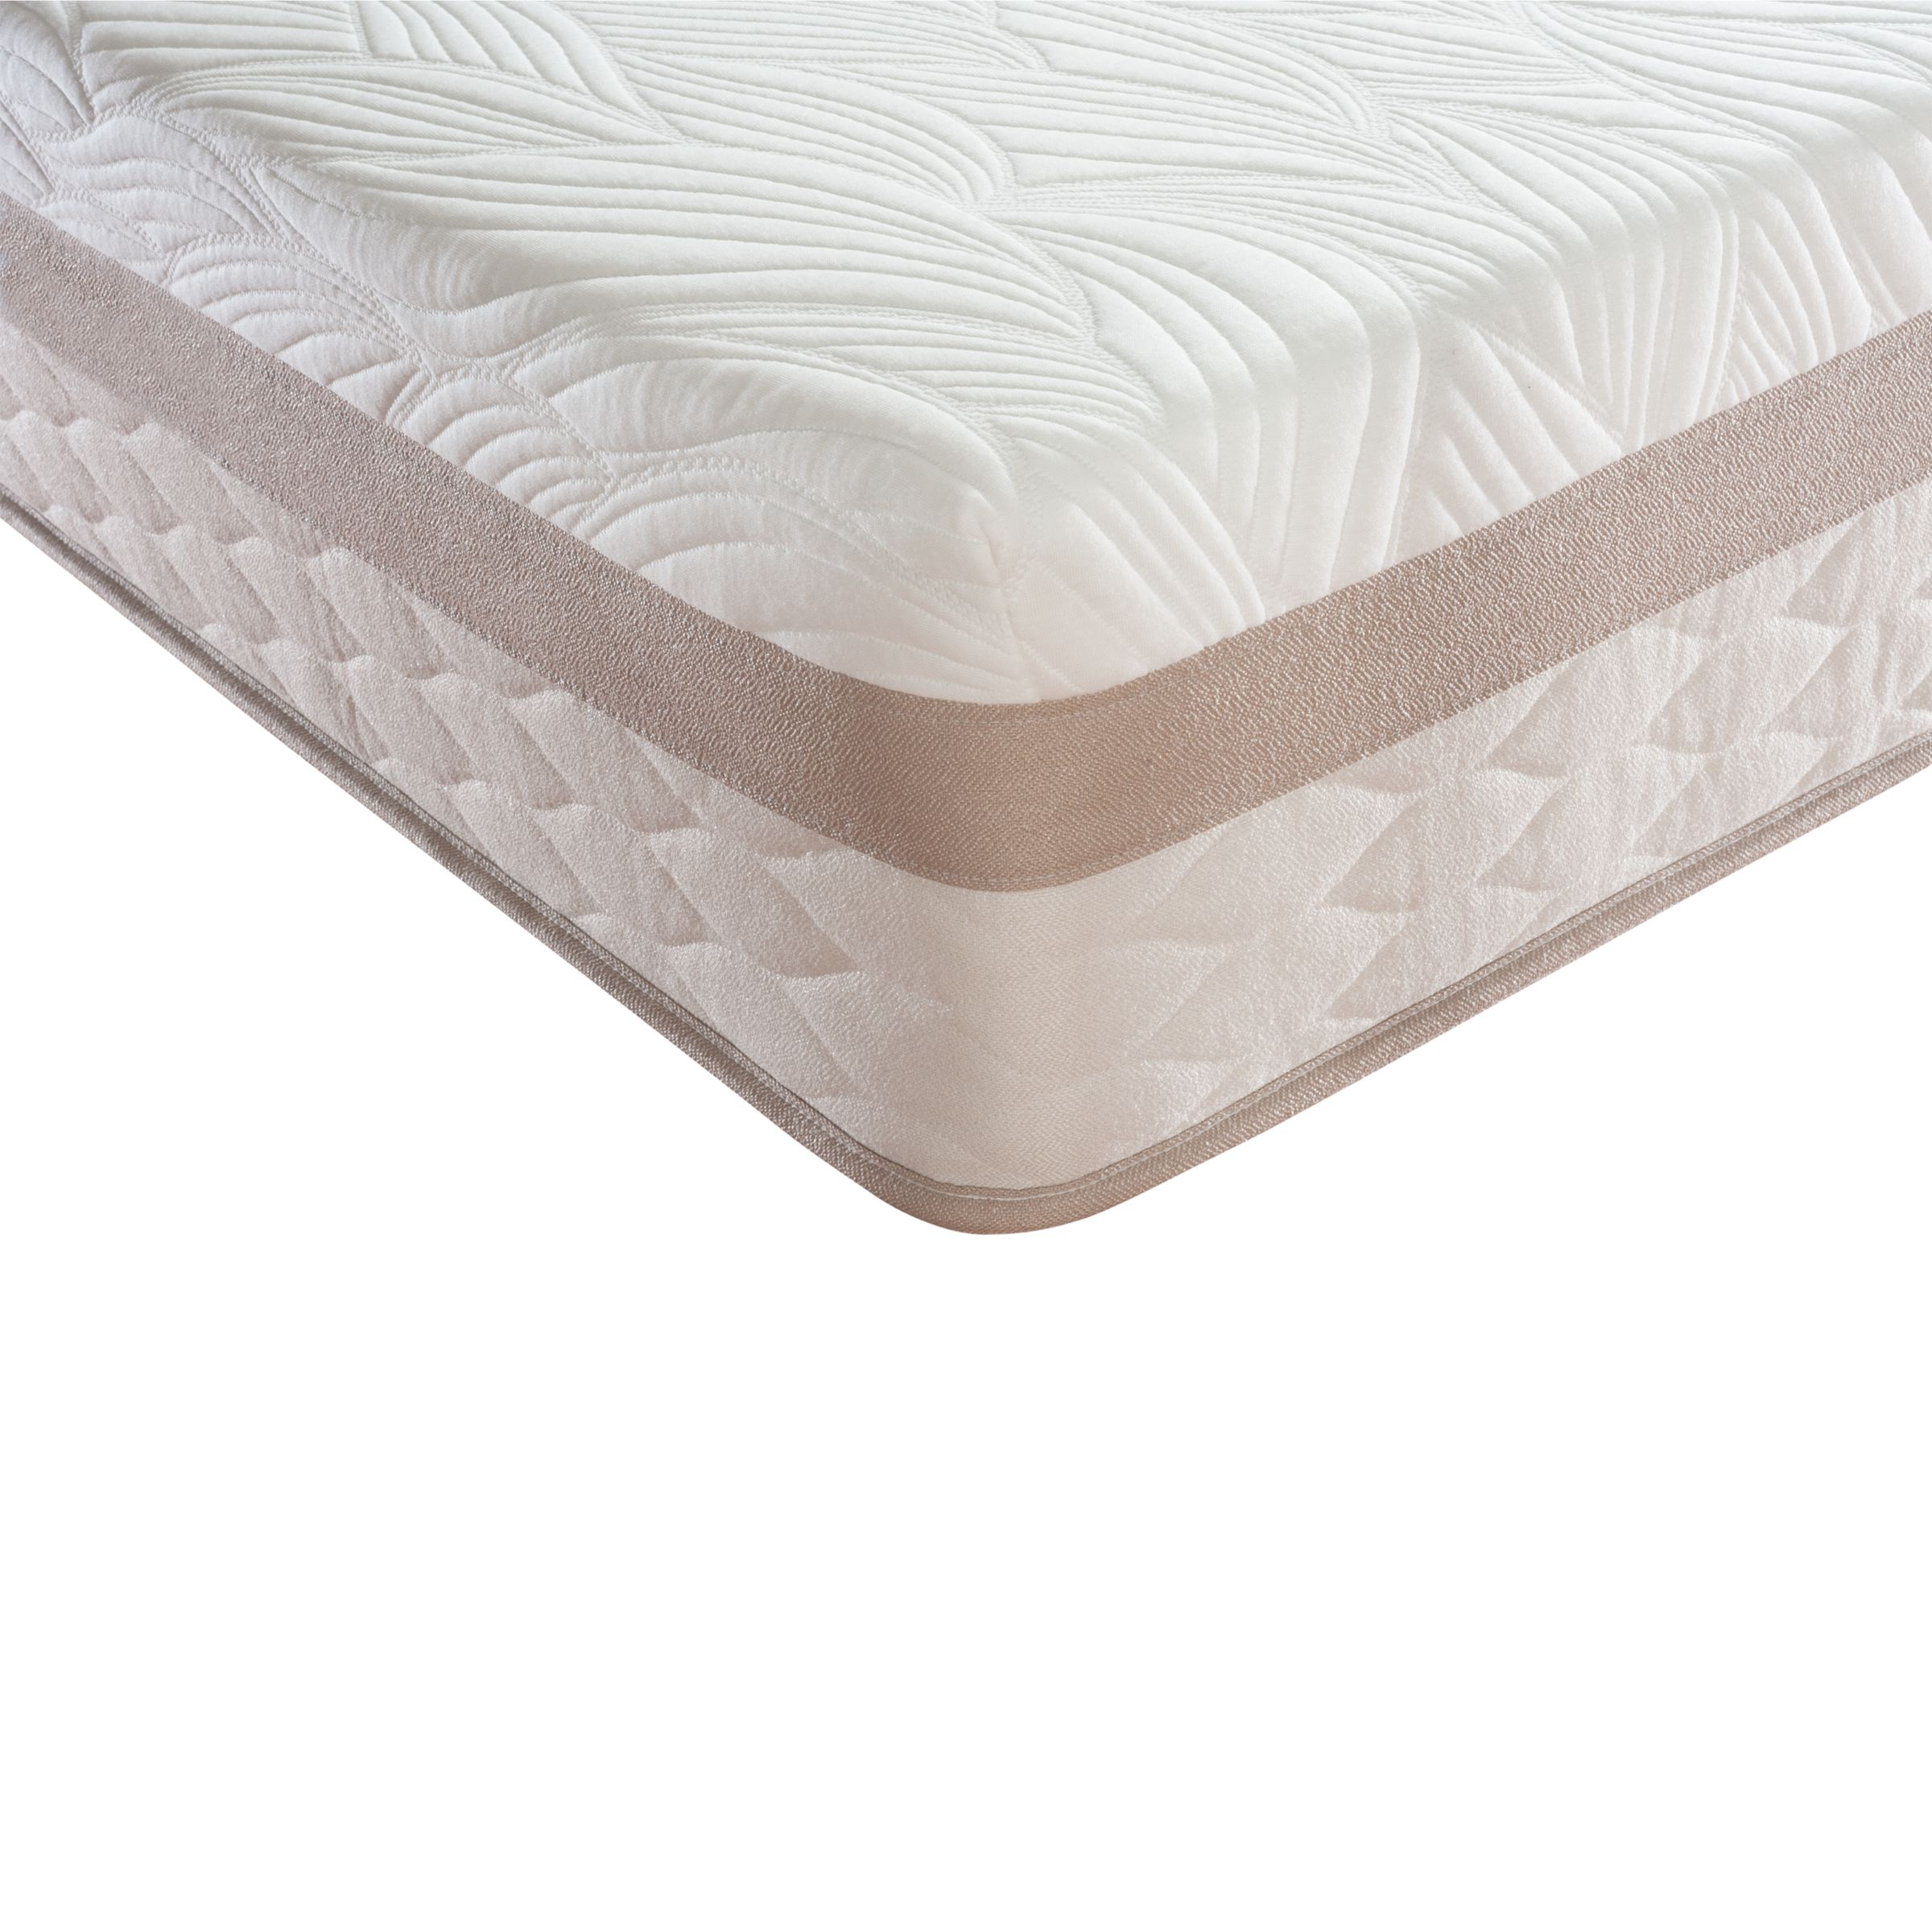 Sealy Optimum Luxury Mattress, Double